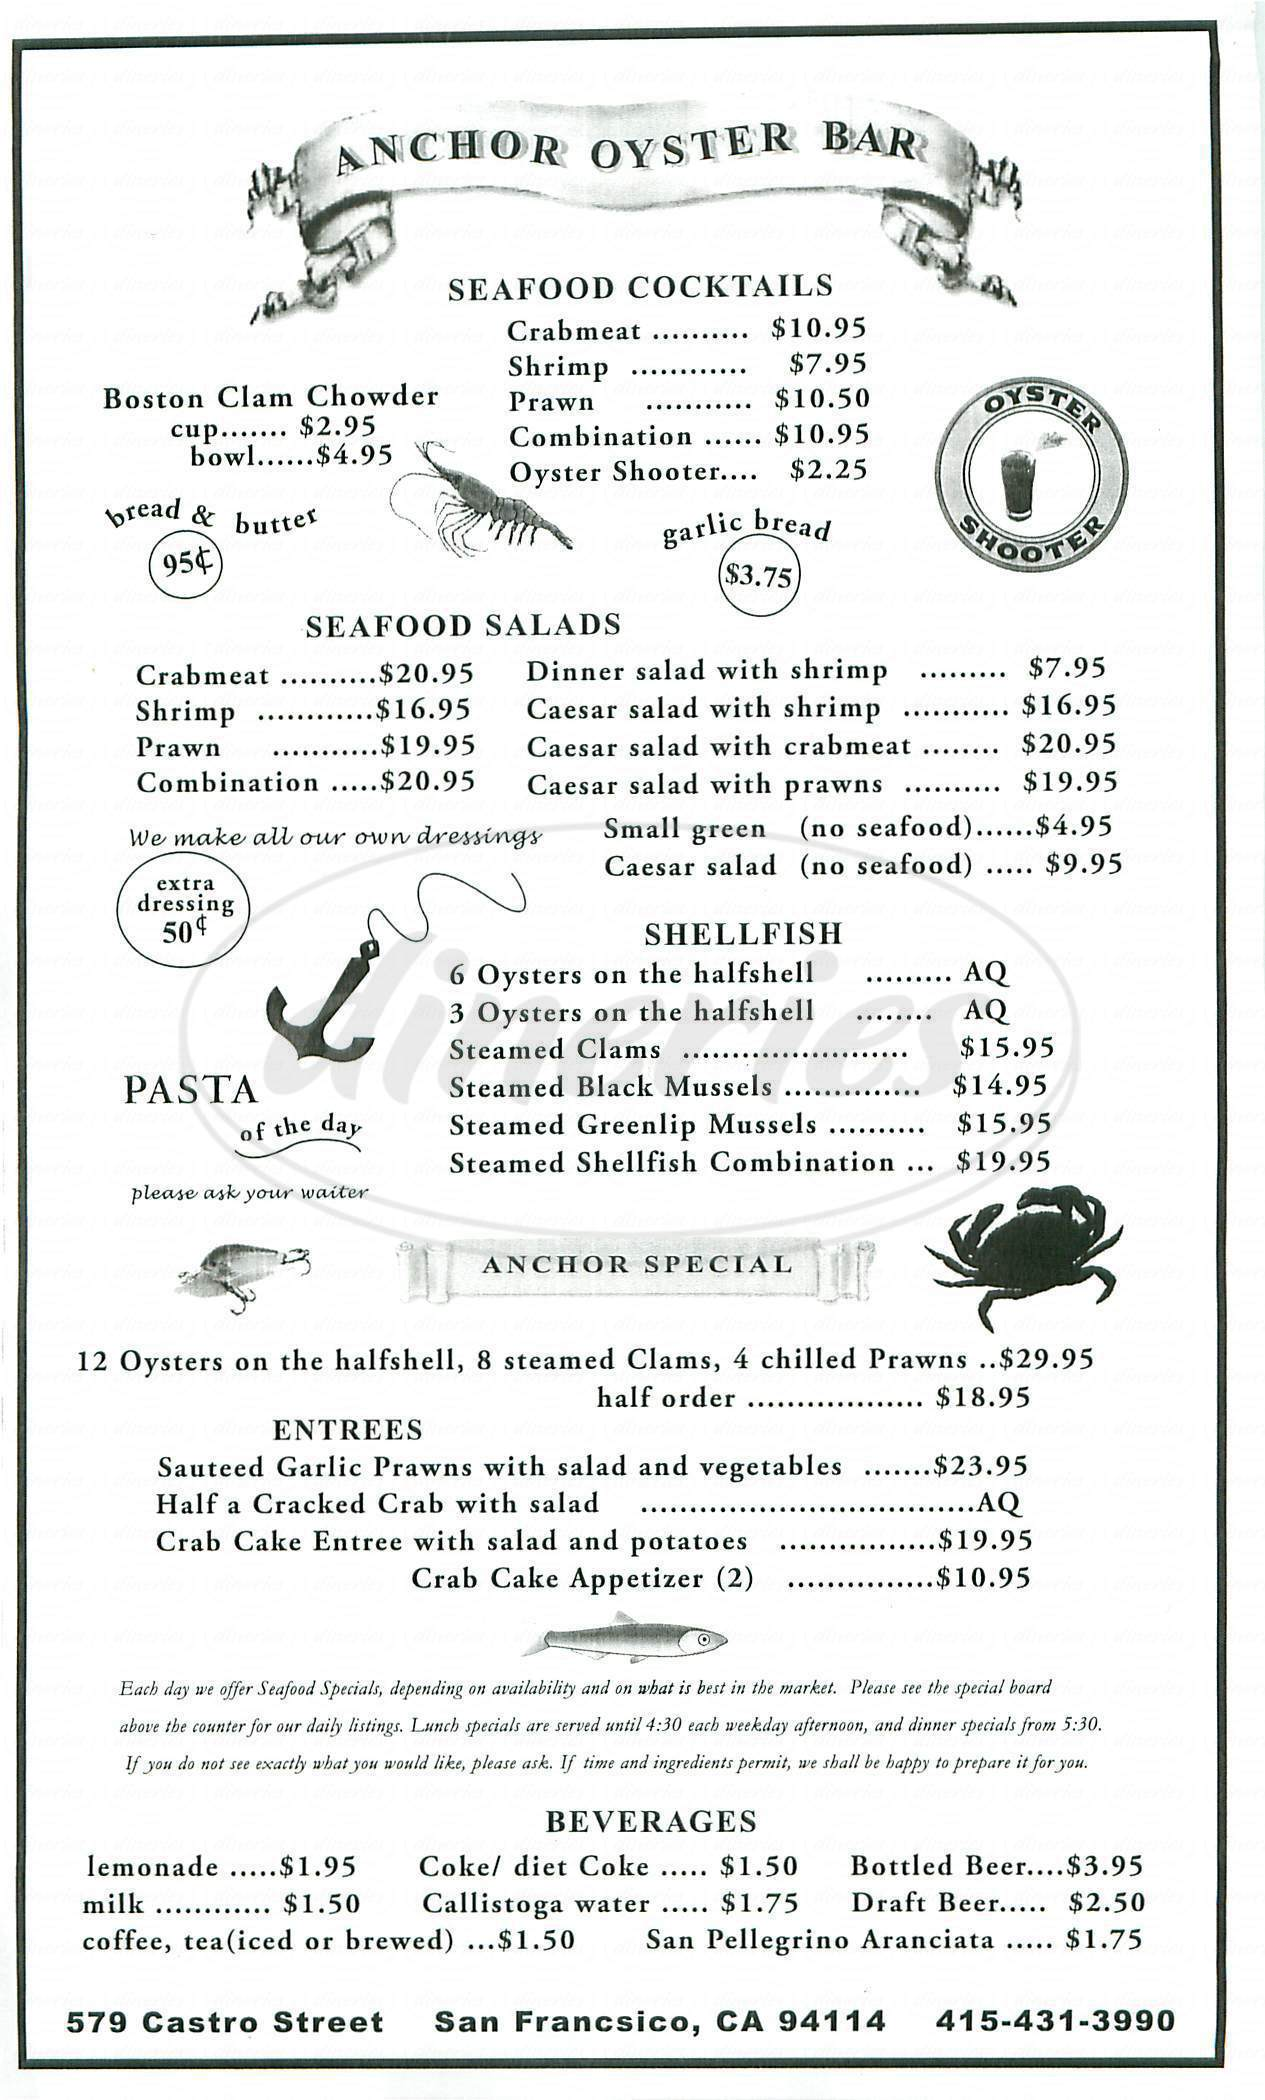 menu for Anchor Oyster Bar